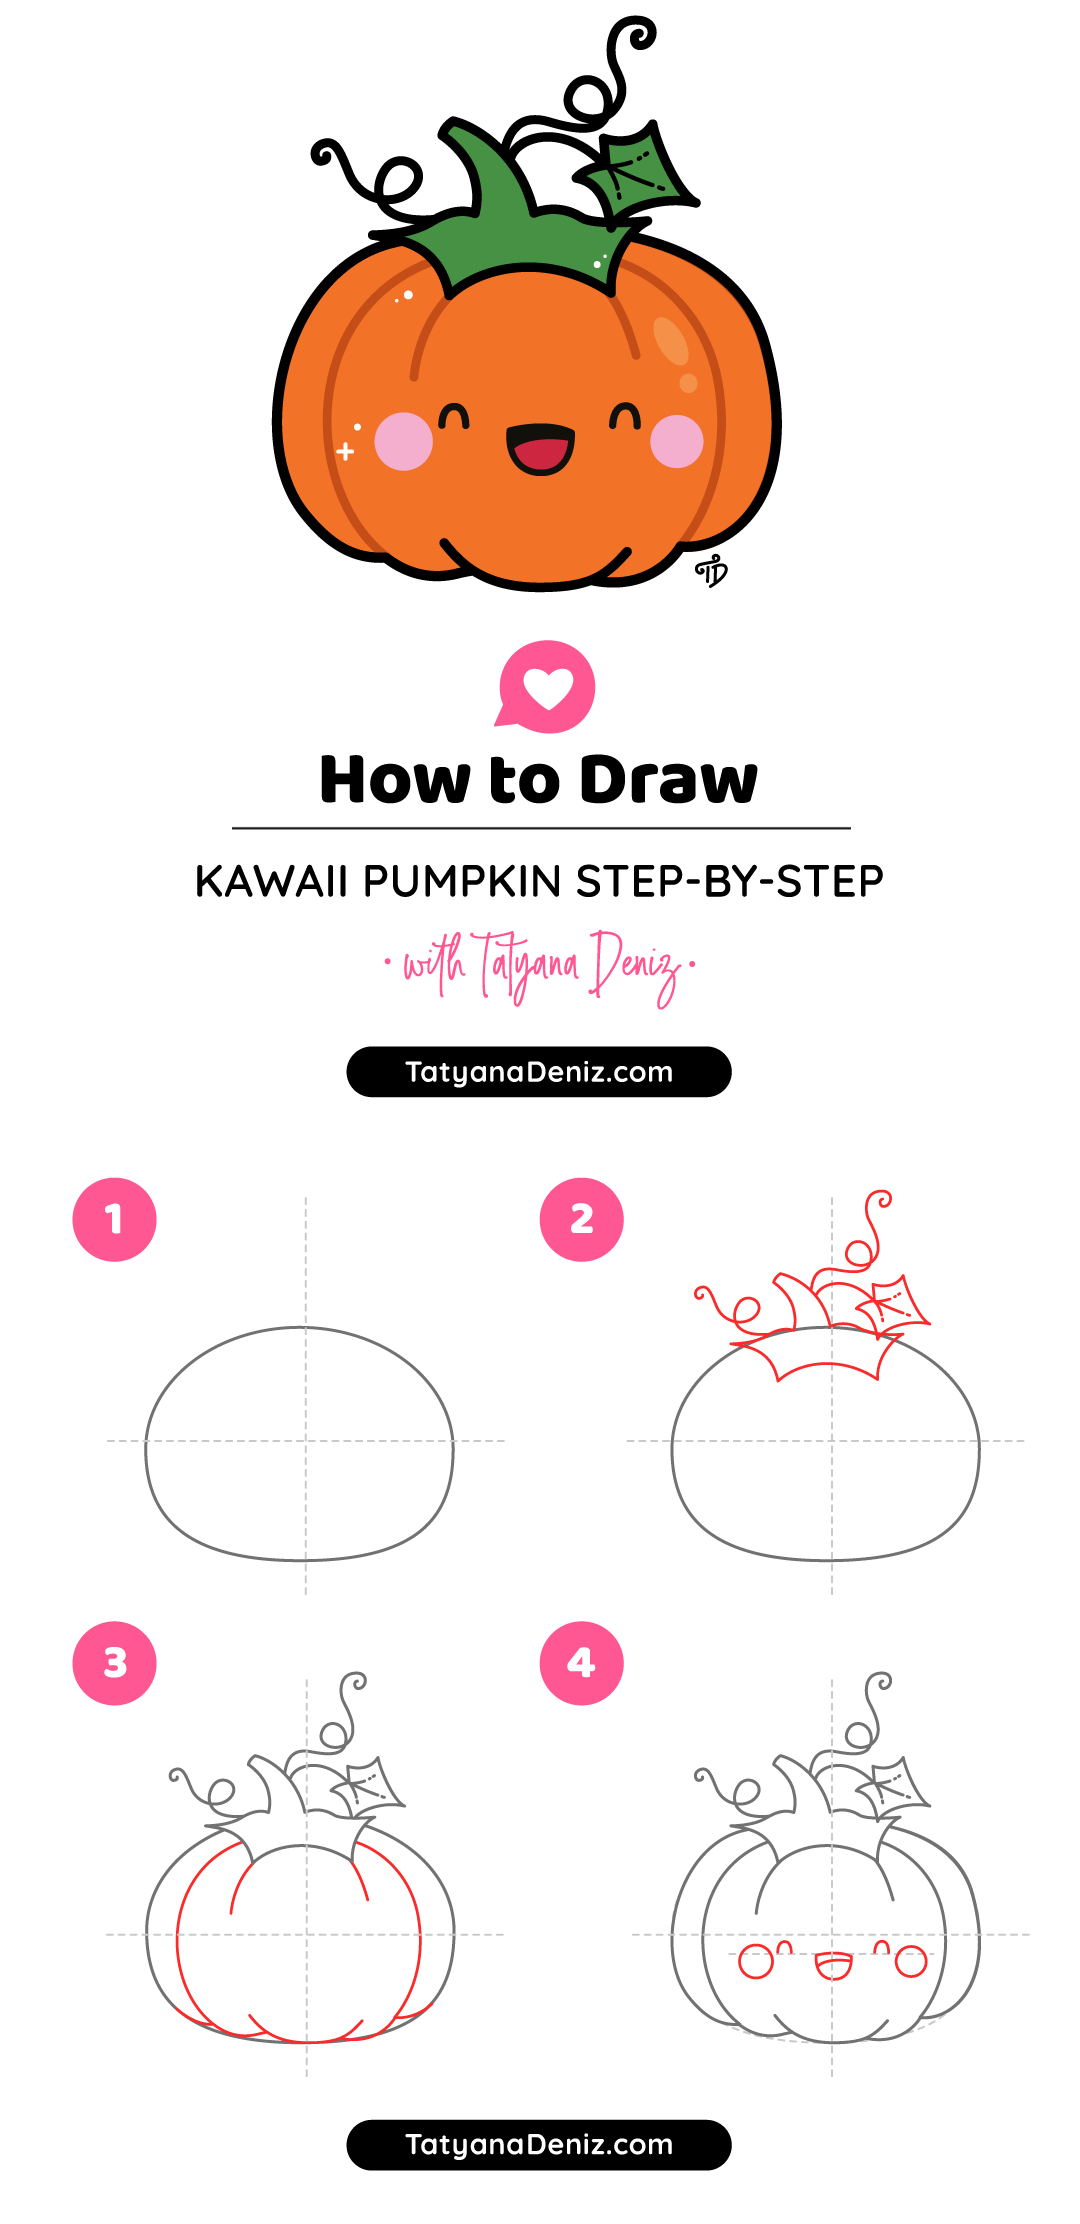 How to draw easy and cute Halloween pumpkin step-by-step